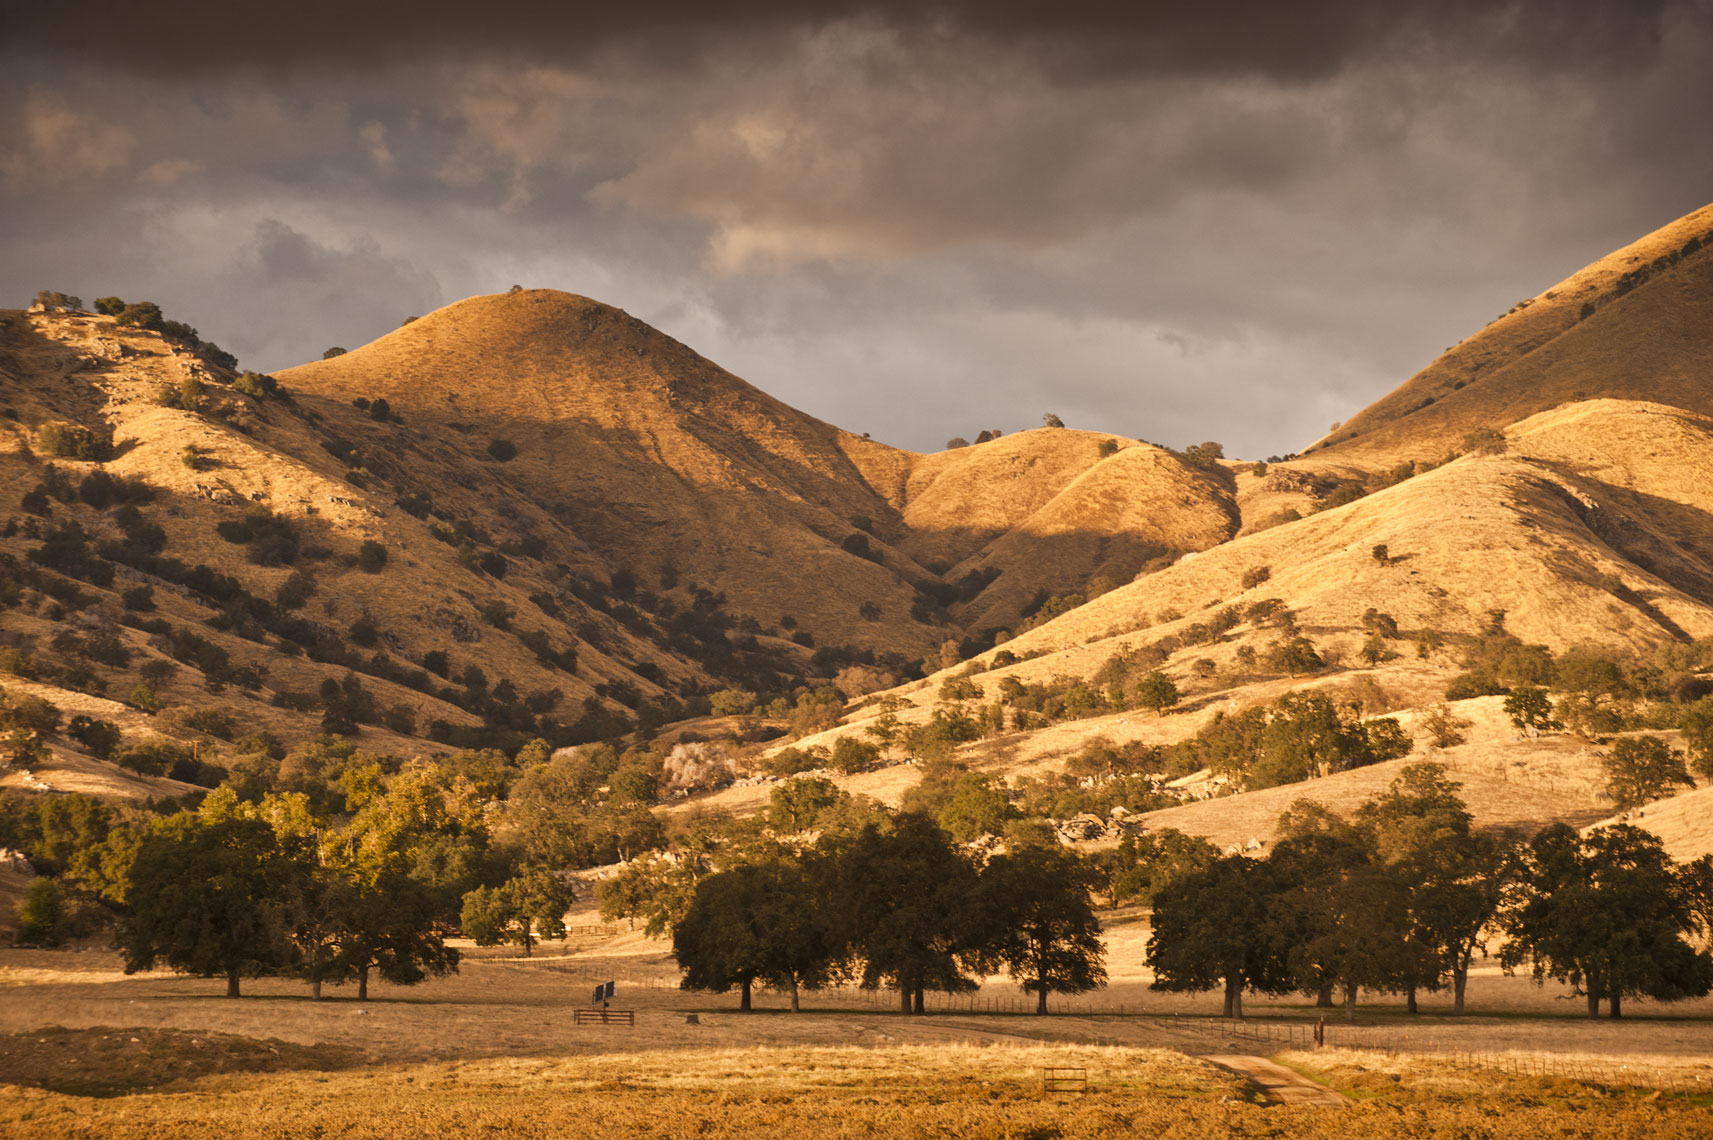 Yokohl Valley, California landscape photography by Mike Morgan.